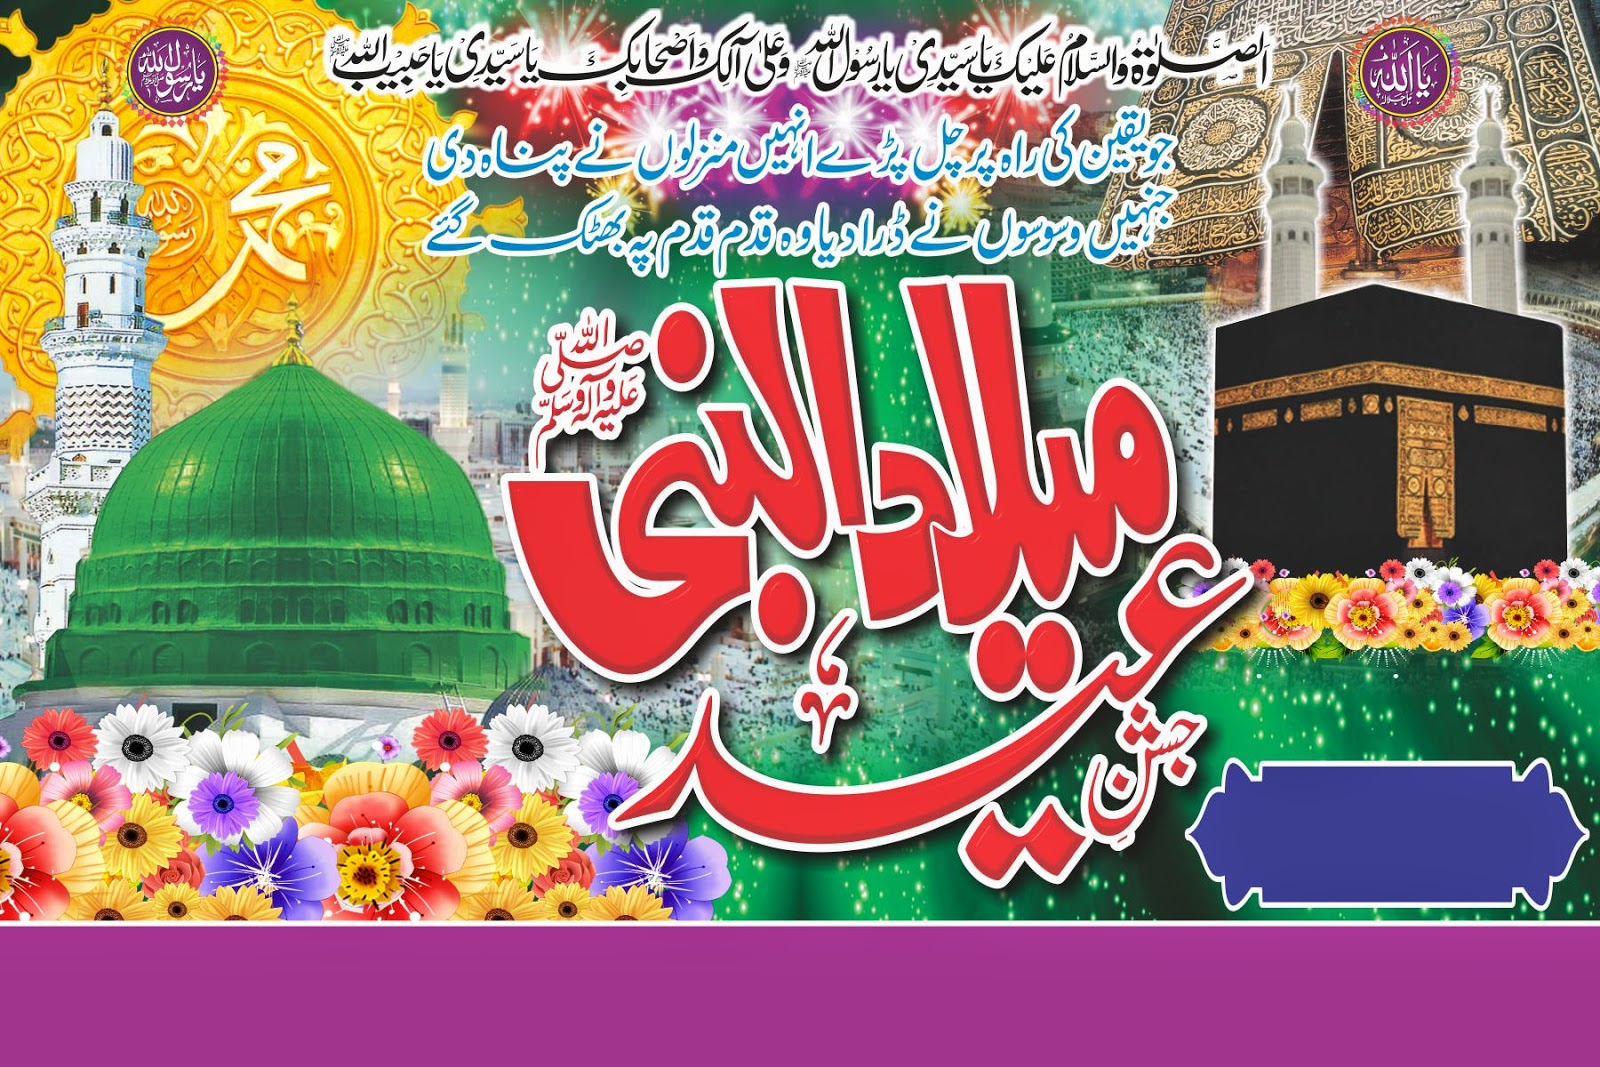 Rabi ul awal wallpaper madani graphics for 12 rabi ul awal 2014 decoration